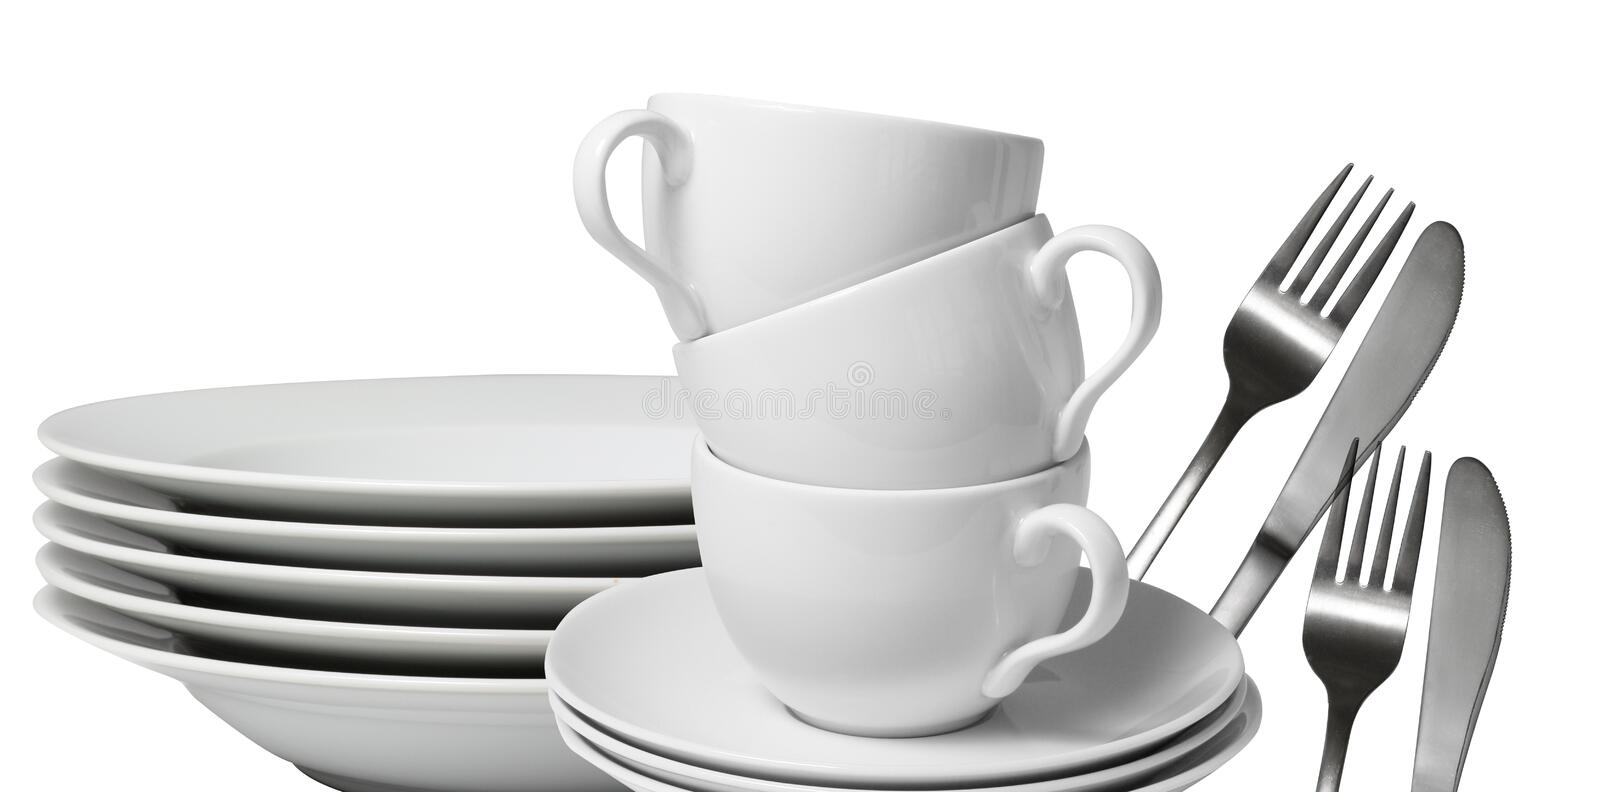 Dishware fotografie stock